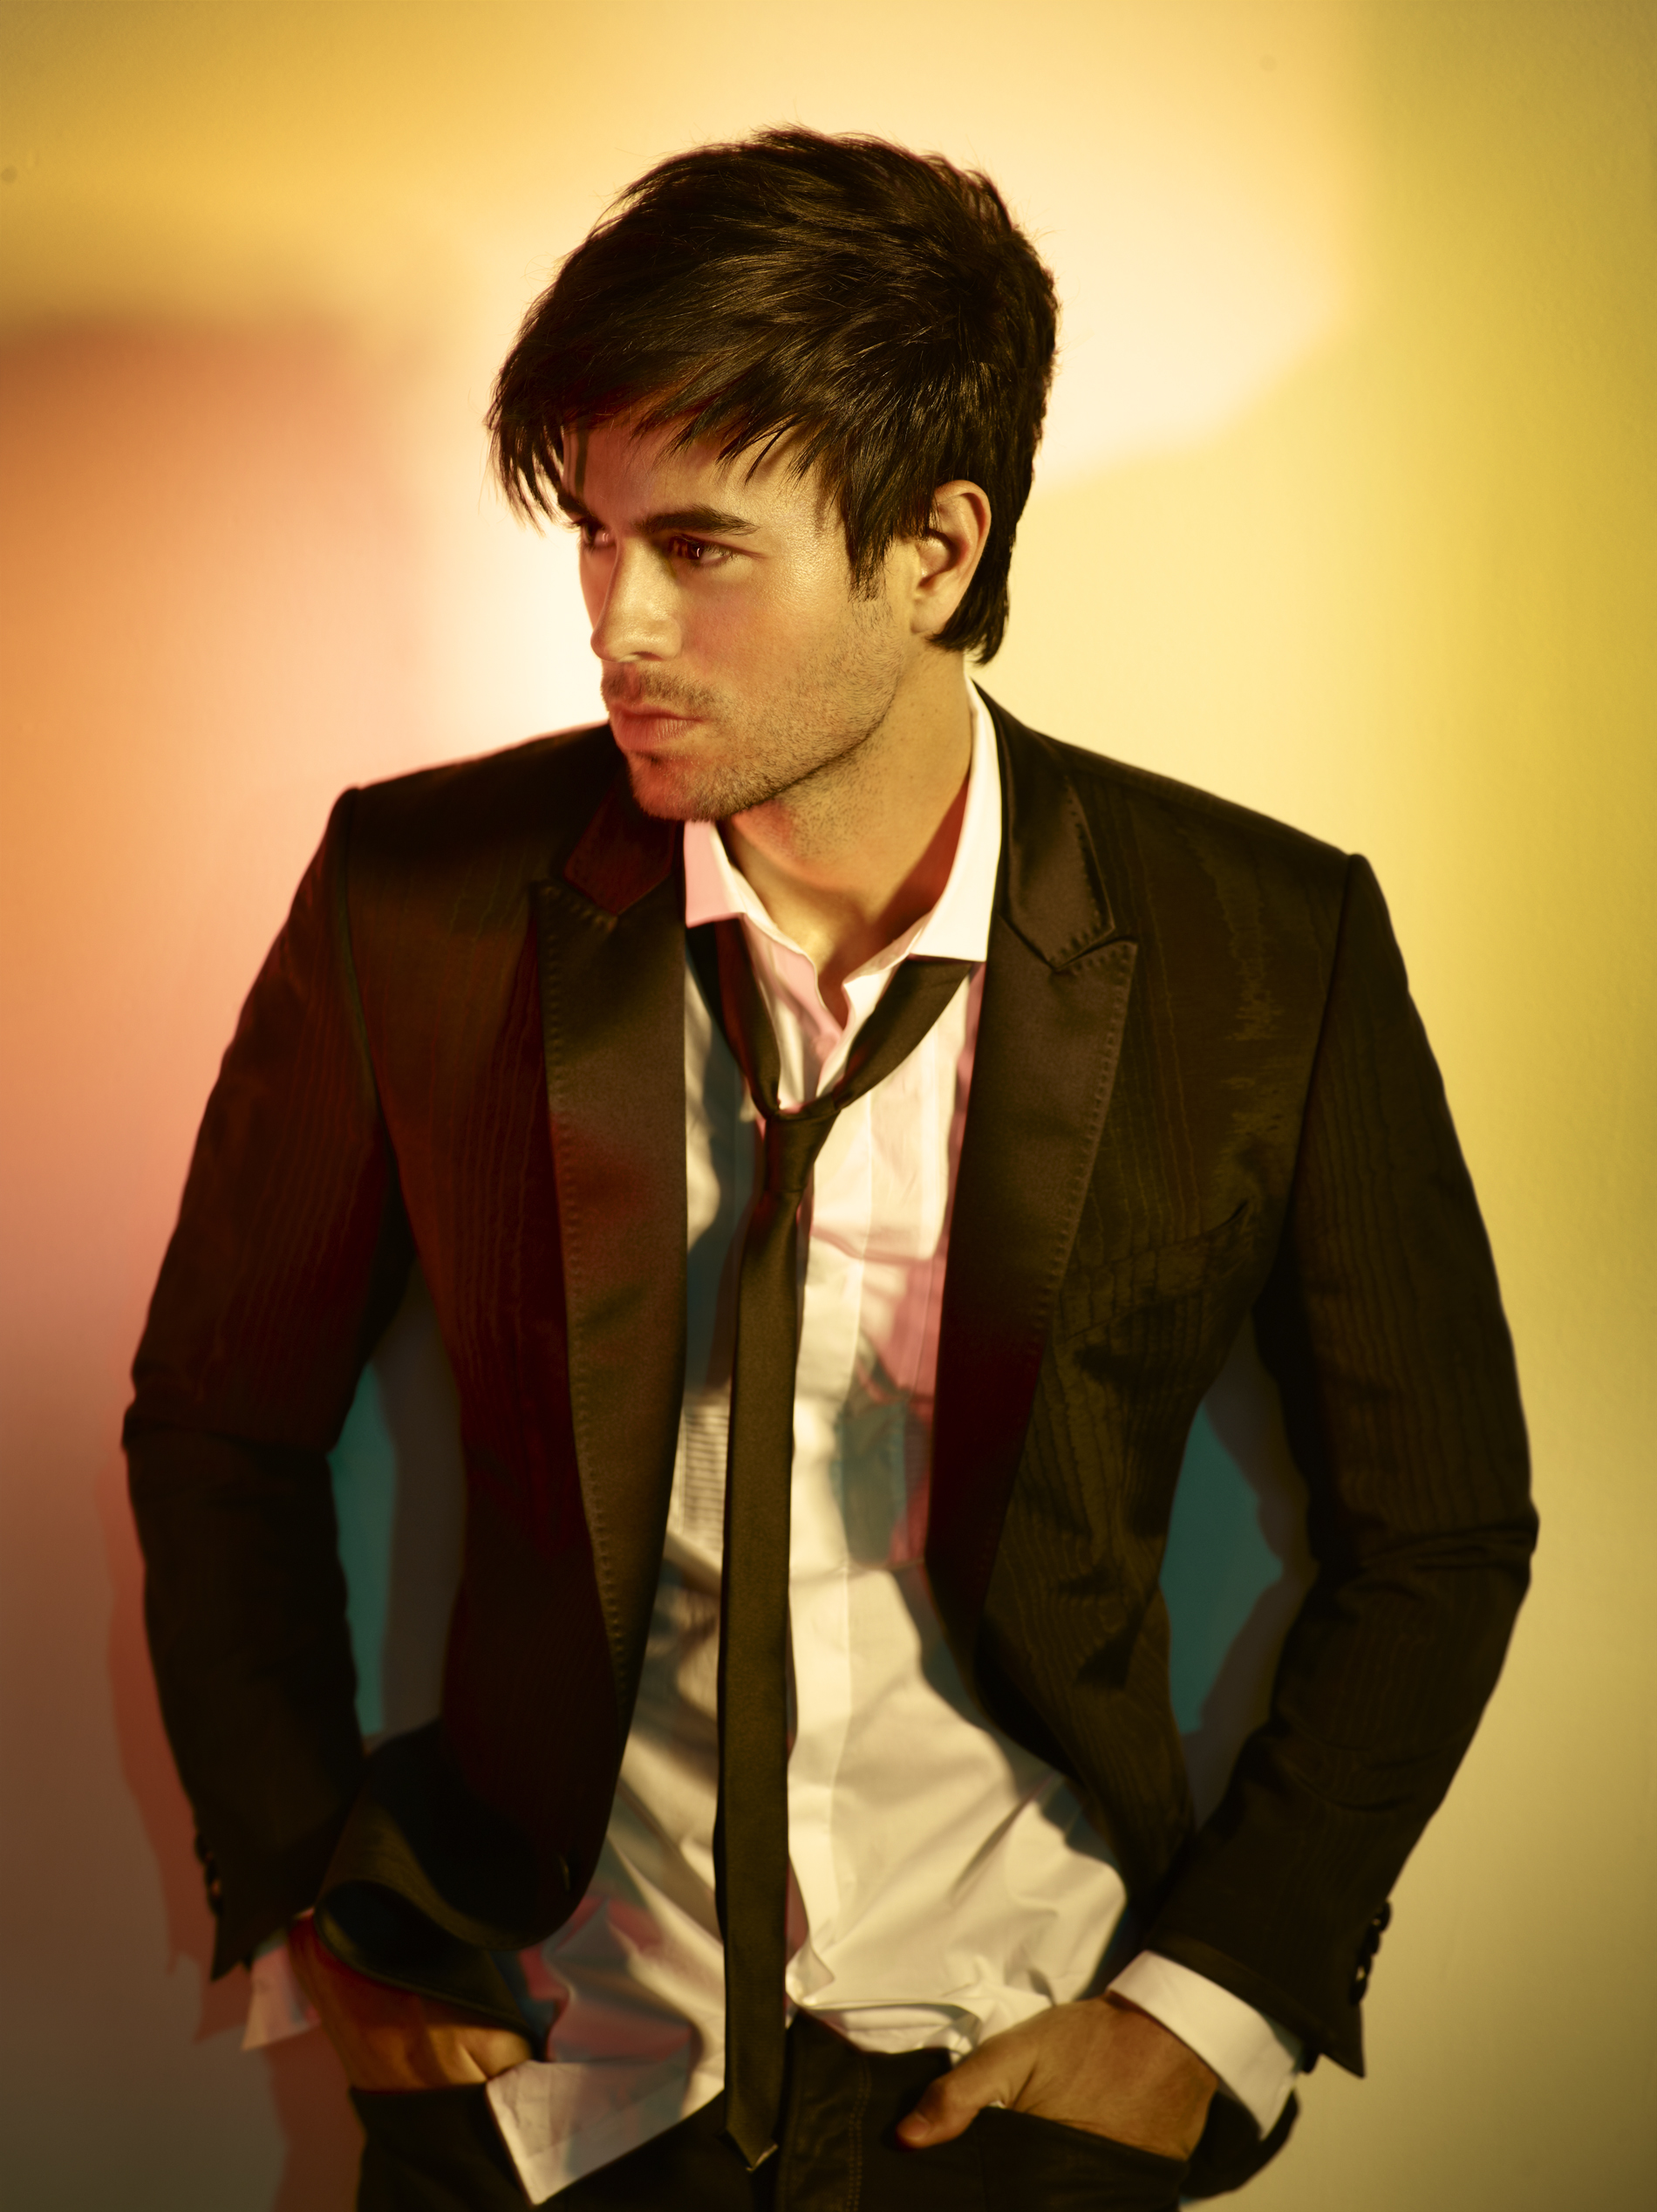 Enrique Iglesias photo #386666